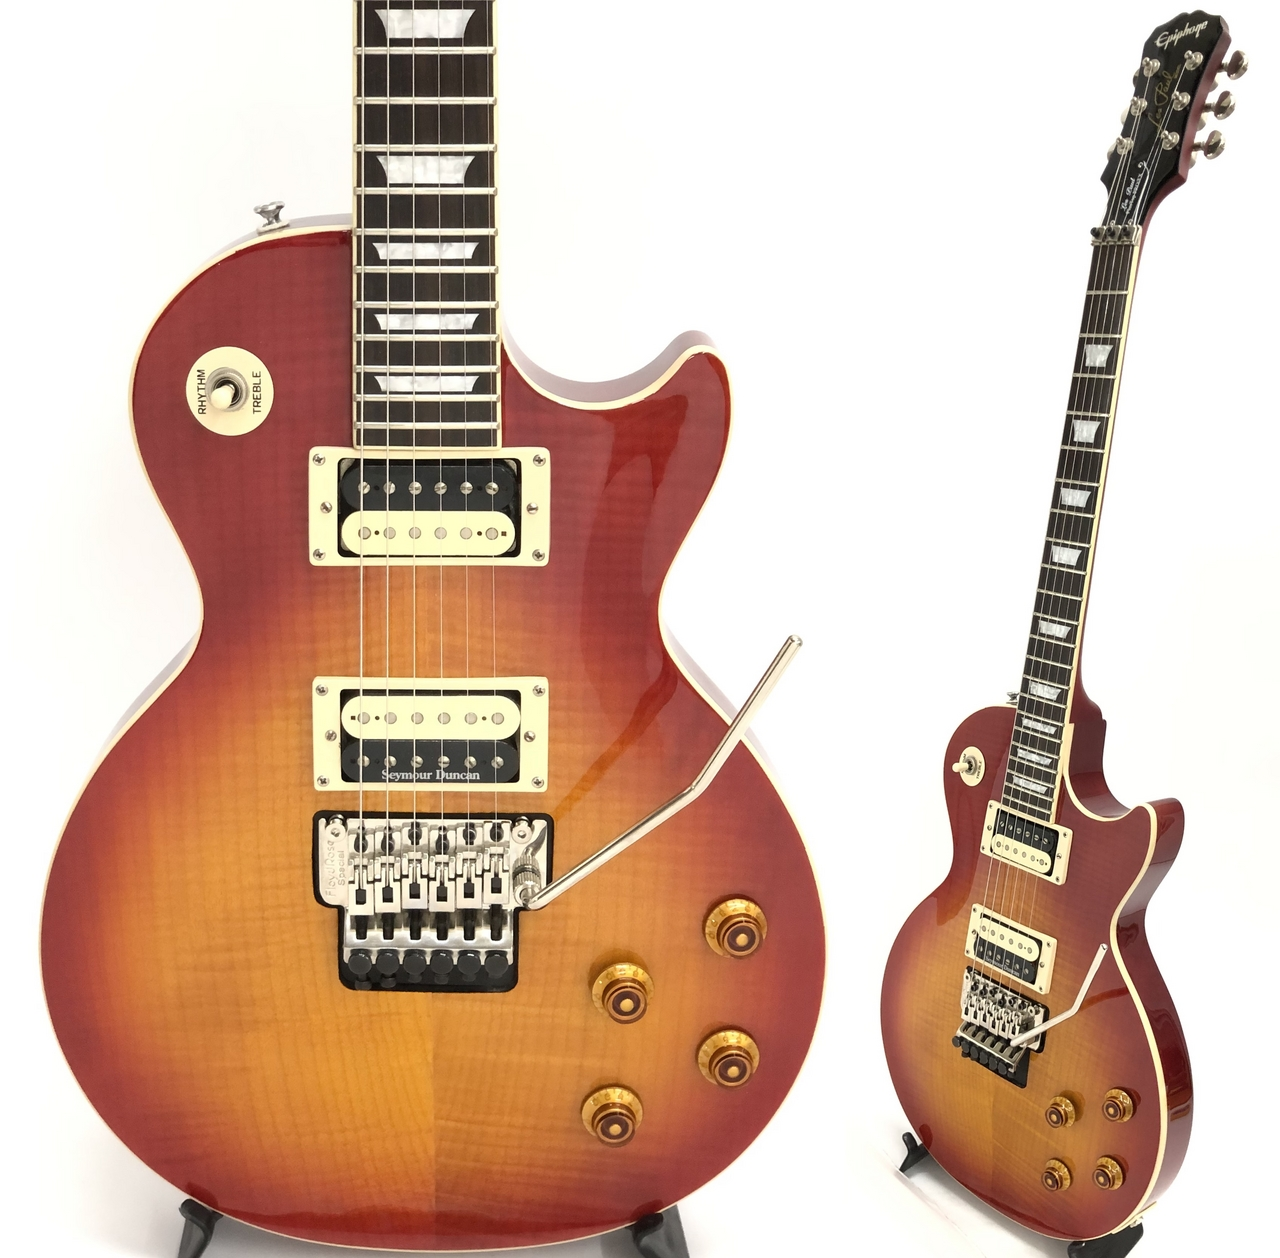 Epiphone Custom Shop Limited Edition Les Paul Plus Top Pro FX Heritage Cherry Sunburst